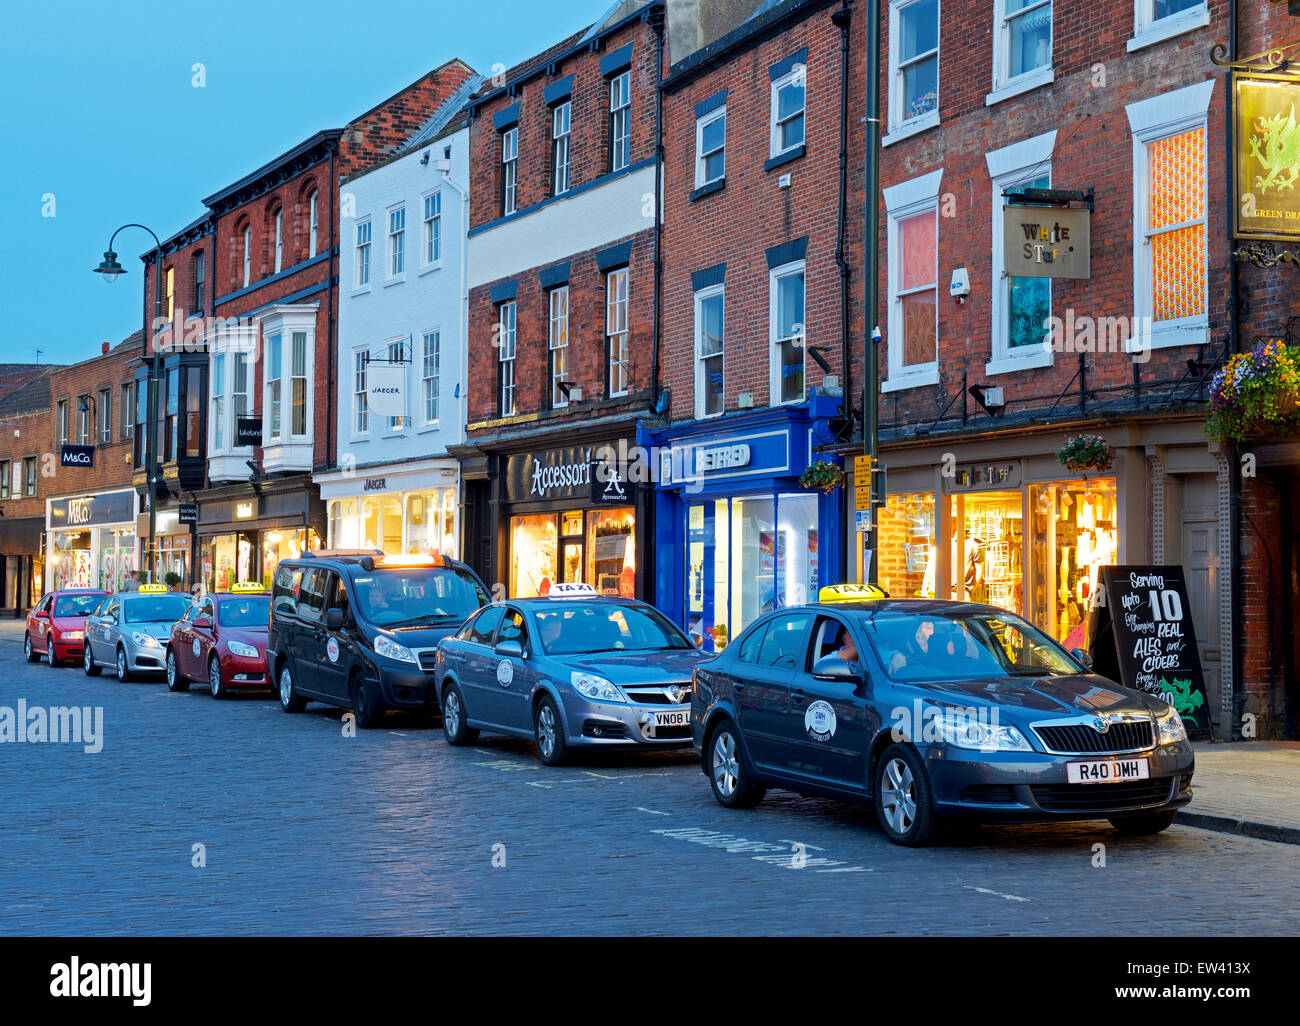 Taxi, Beverley, East Yorkshire, Inghilterra, Regno Unito Immagini Stock